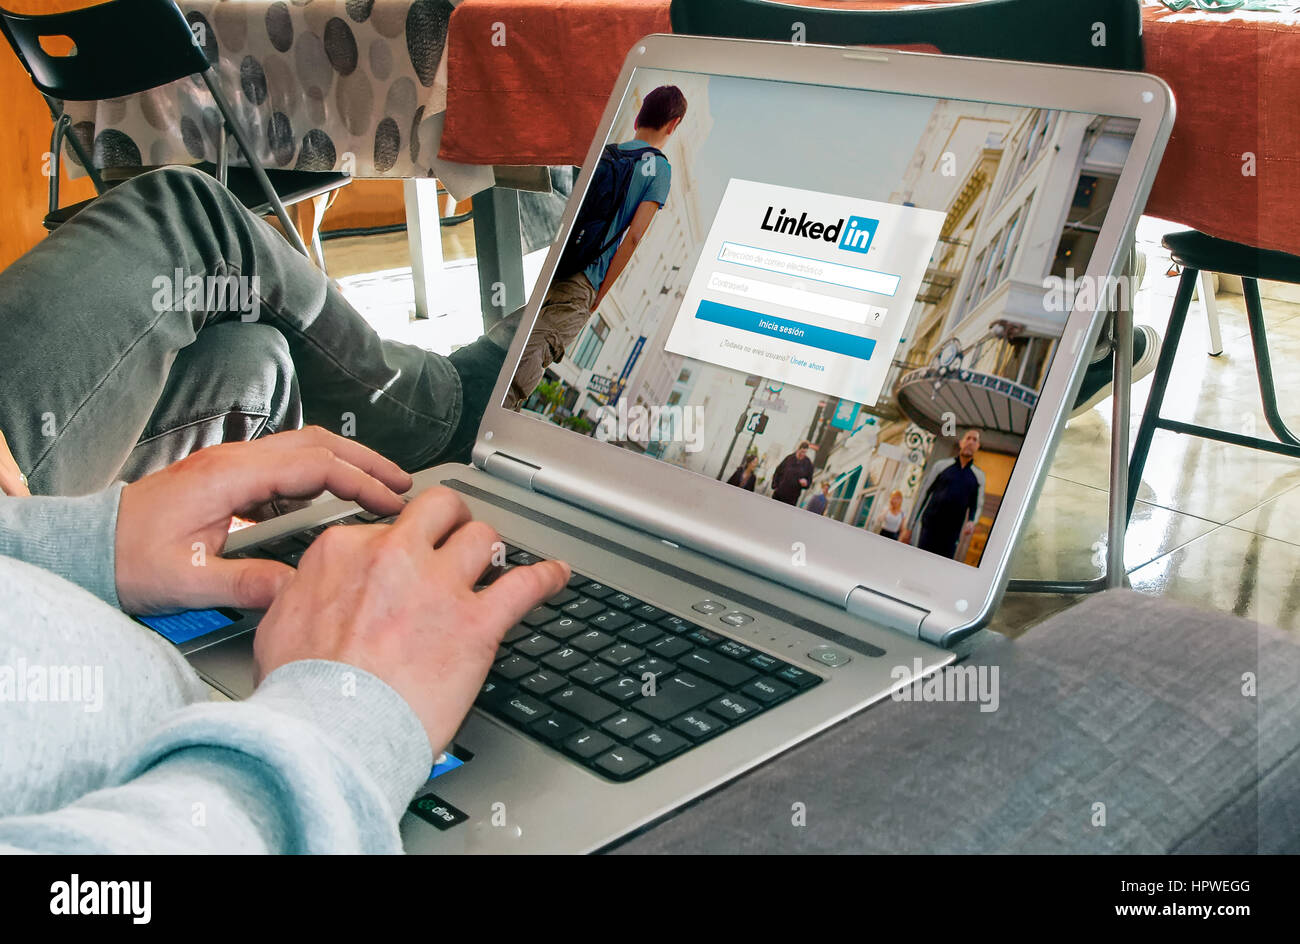 LinkedIn login page in a laptop screen. - Stock Image